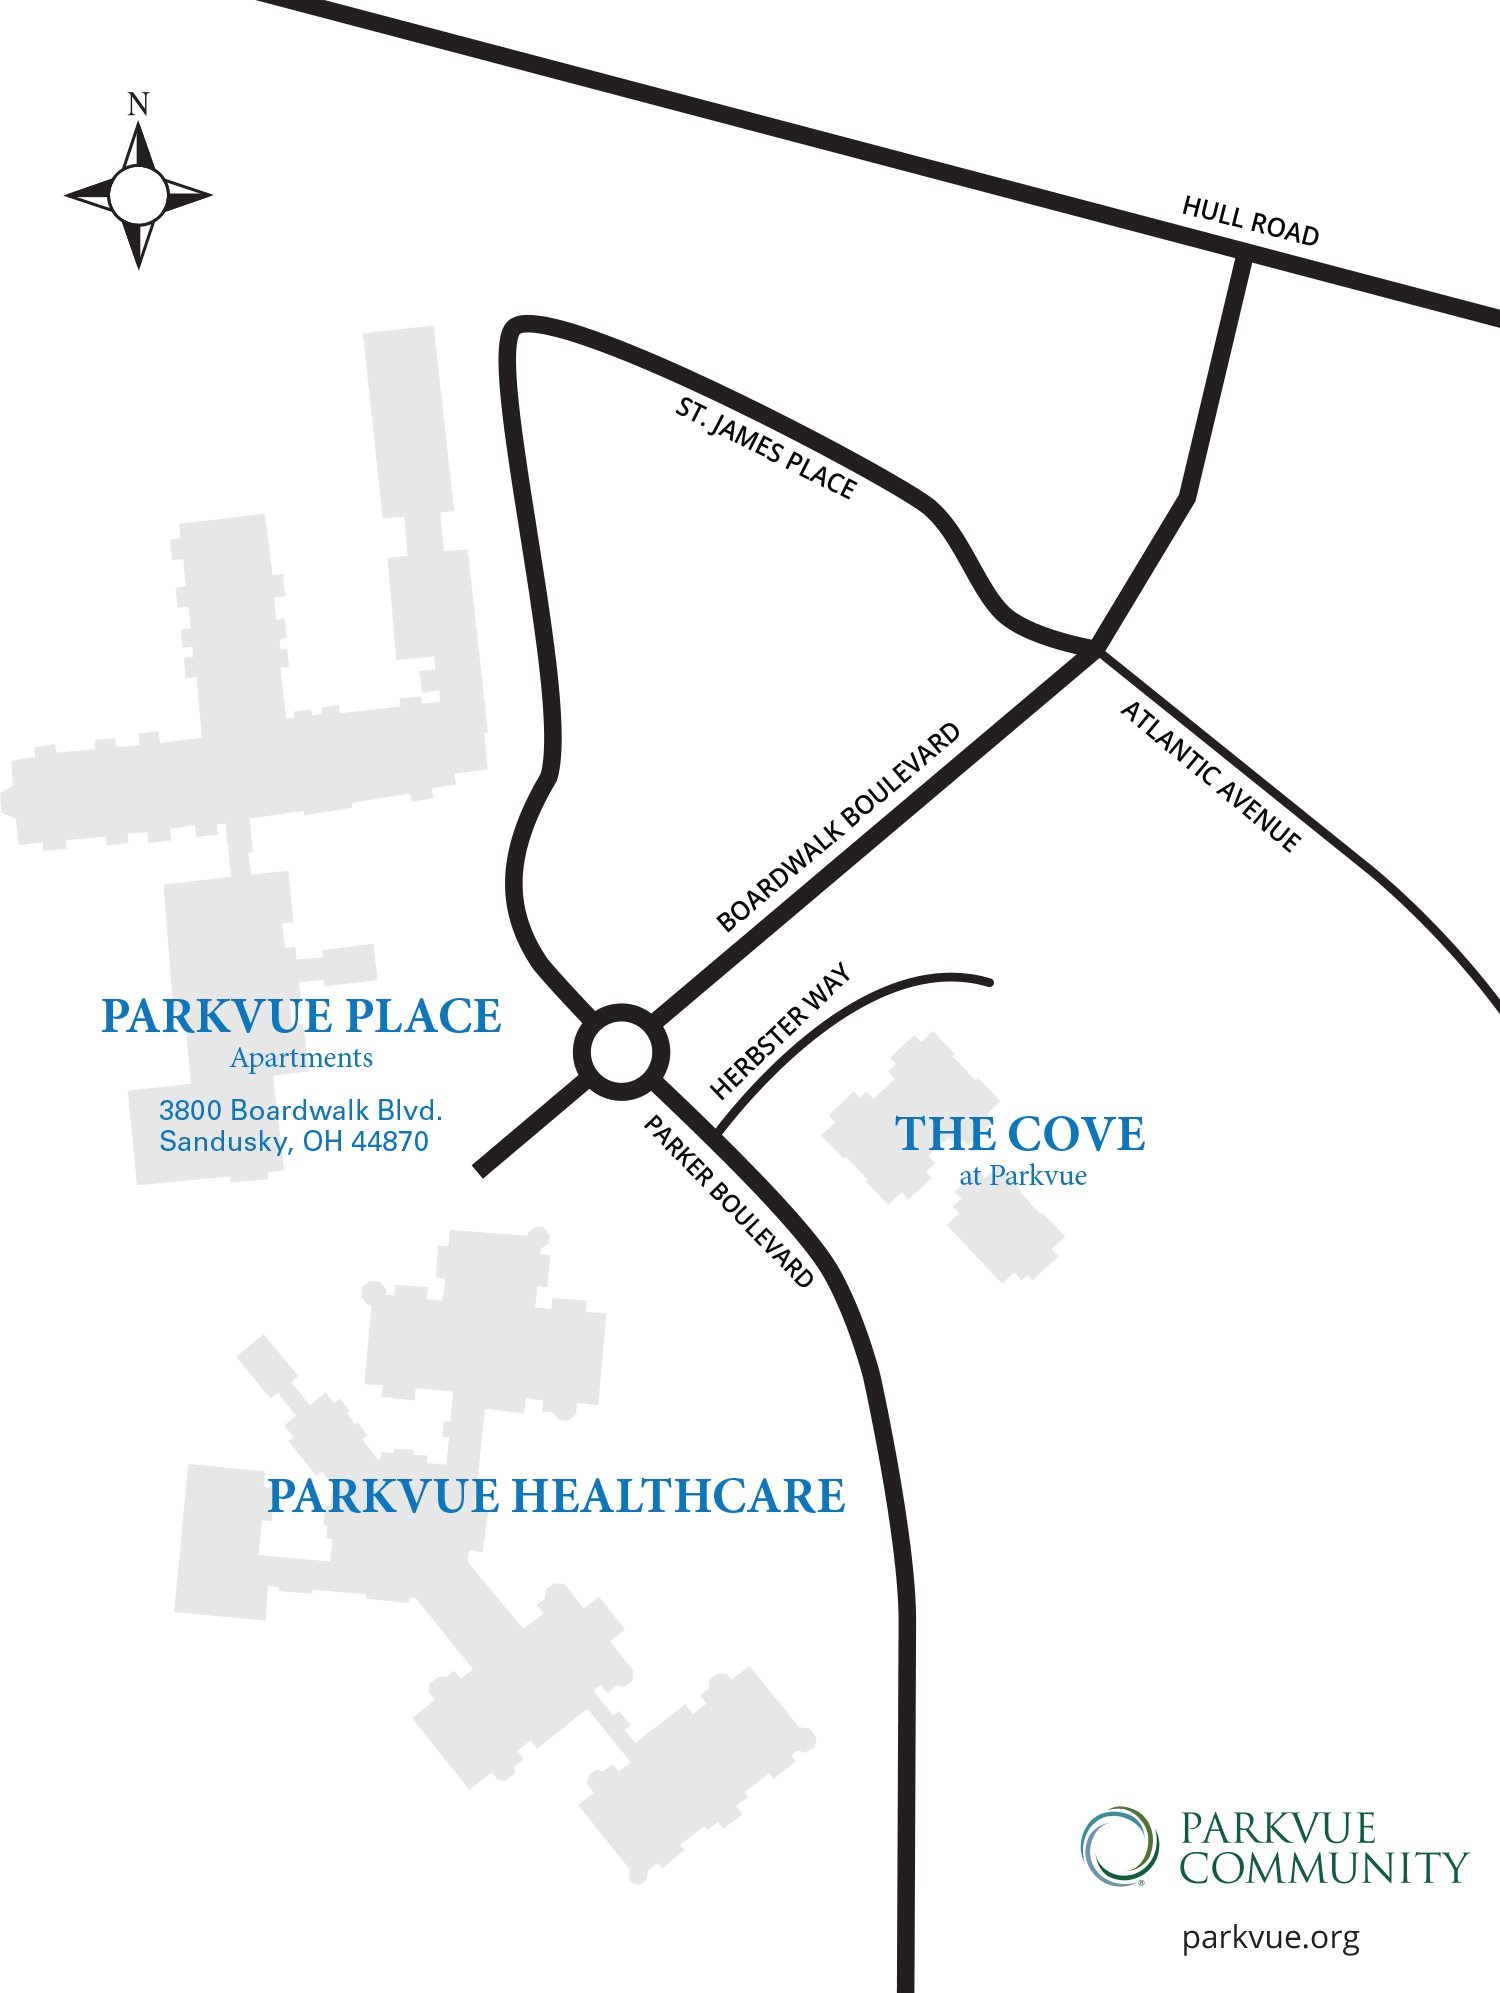 Map of Parkvue Community Campus